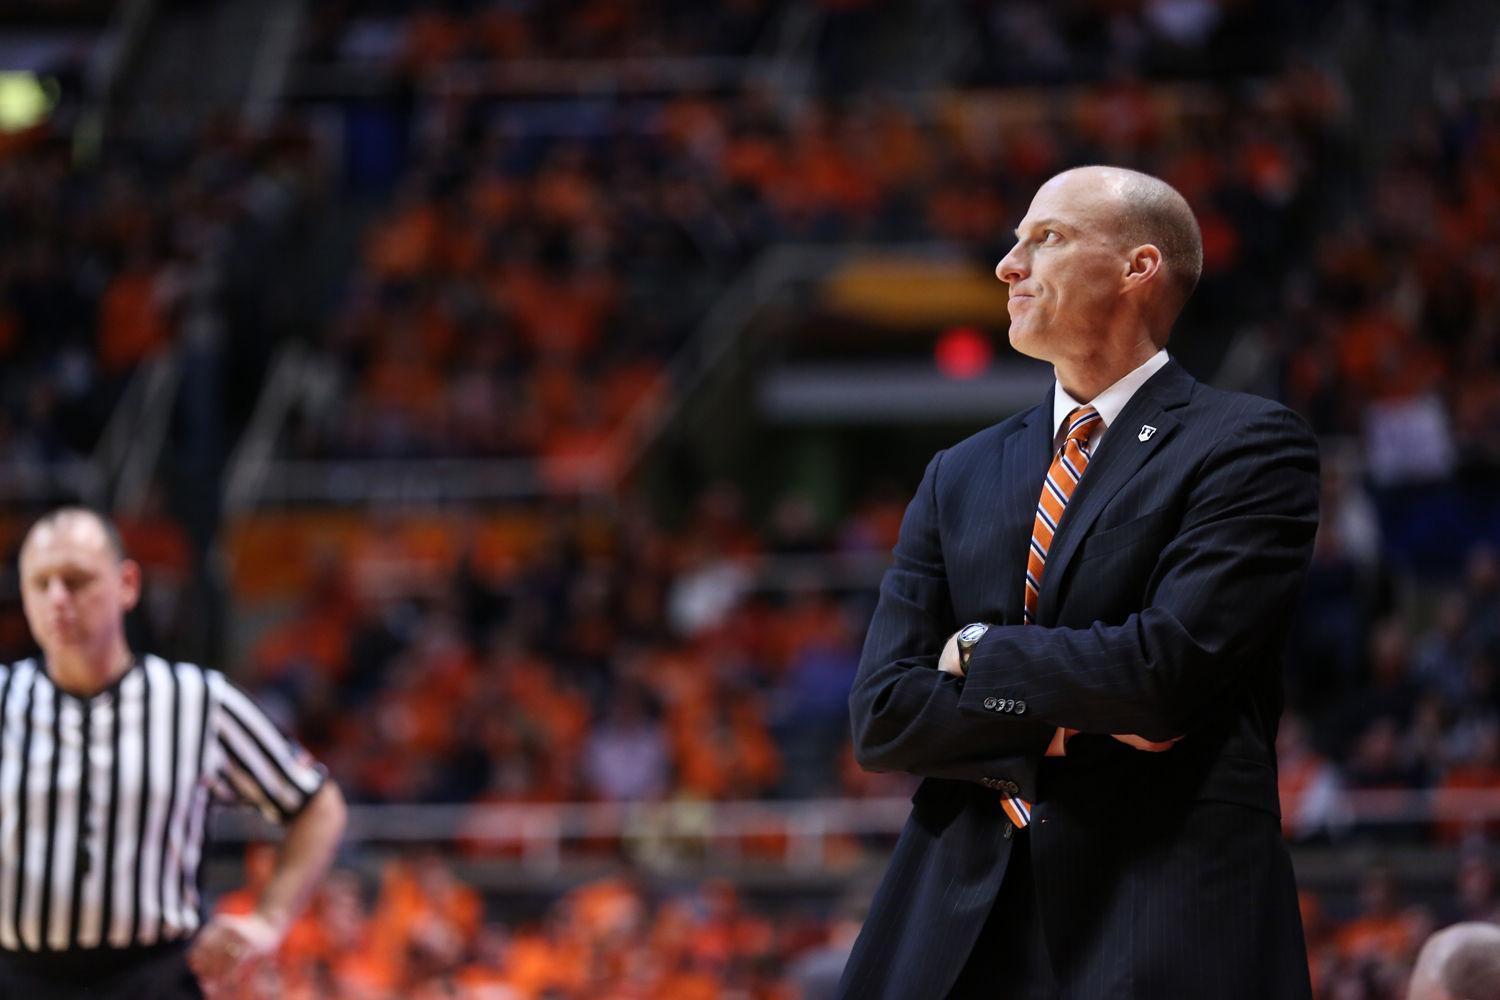 Illinois' head coach John Groce reacts to a play on court during last season's 86-80 Illini win over Northwestern. His team dropped a 58-56 game to the Wildcats on Saturday night.